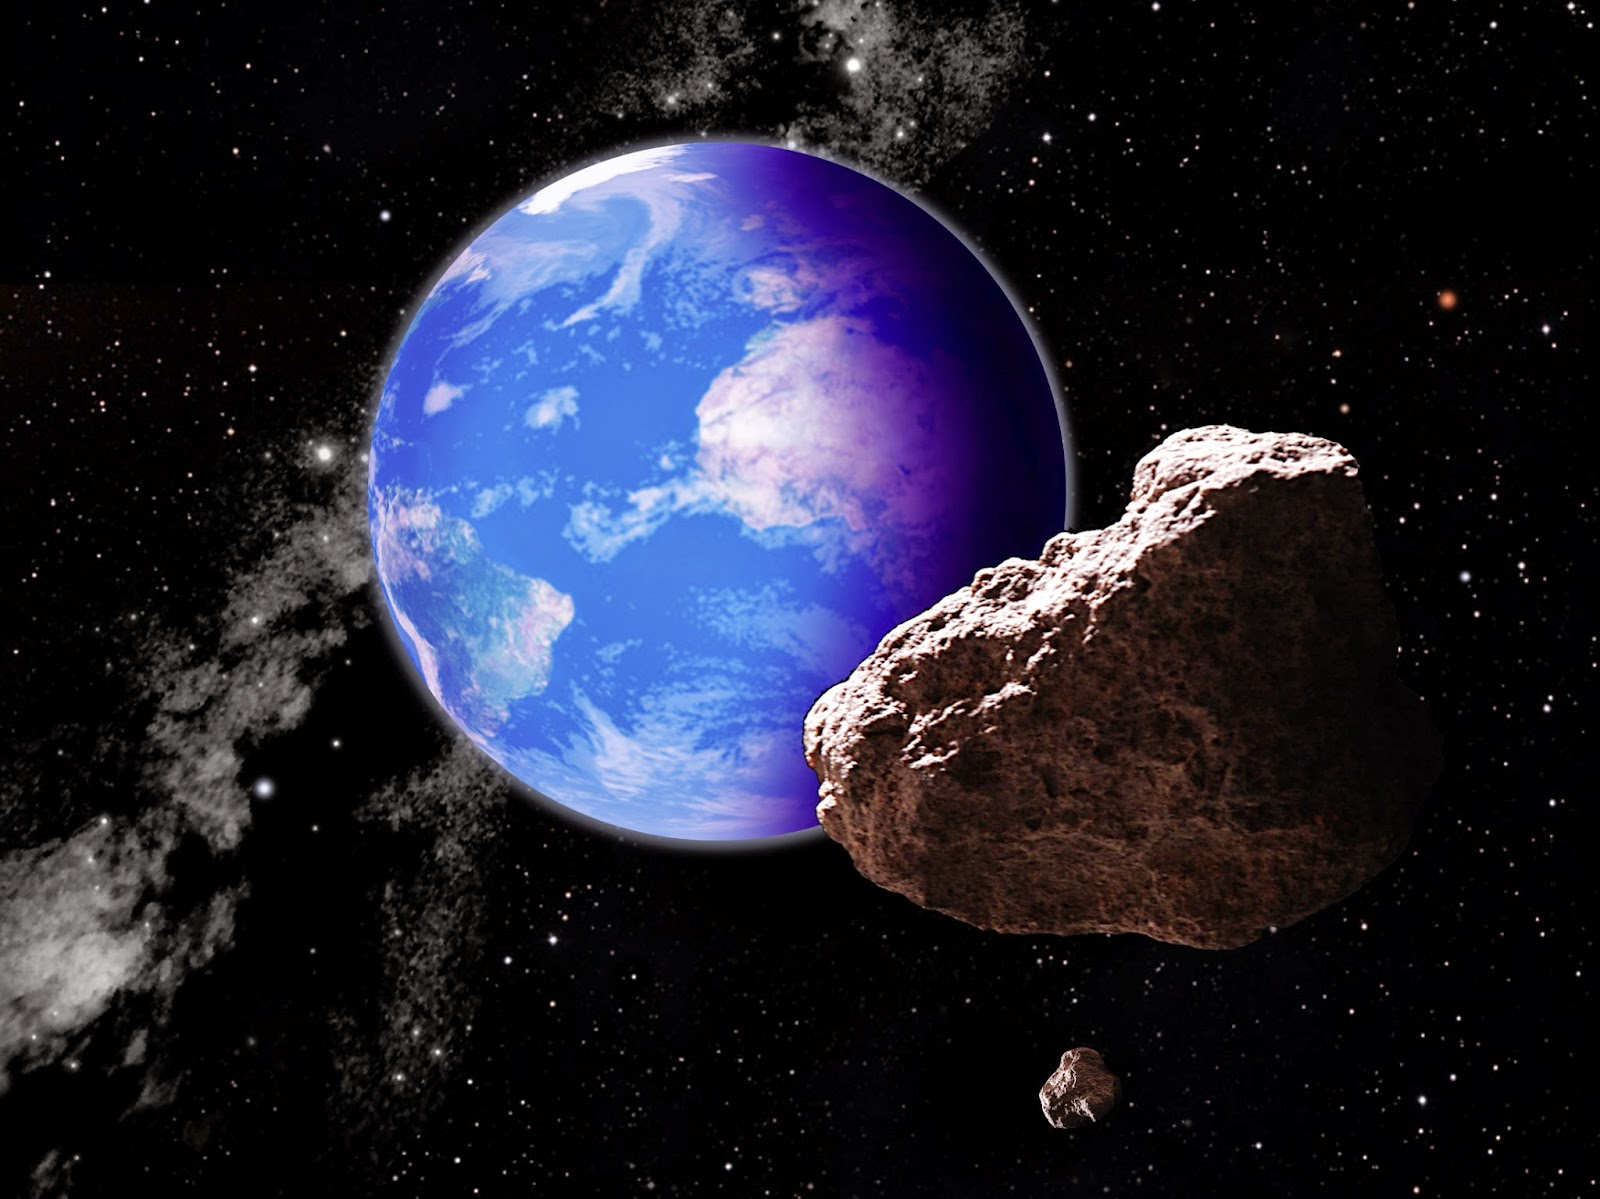 asteroid miles from earth - photo #16